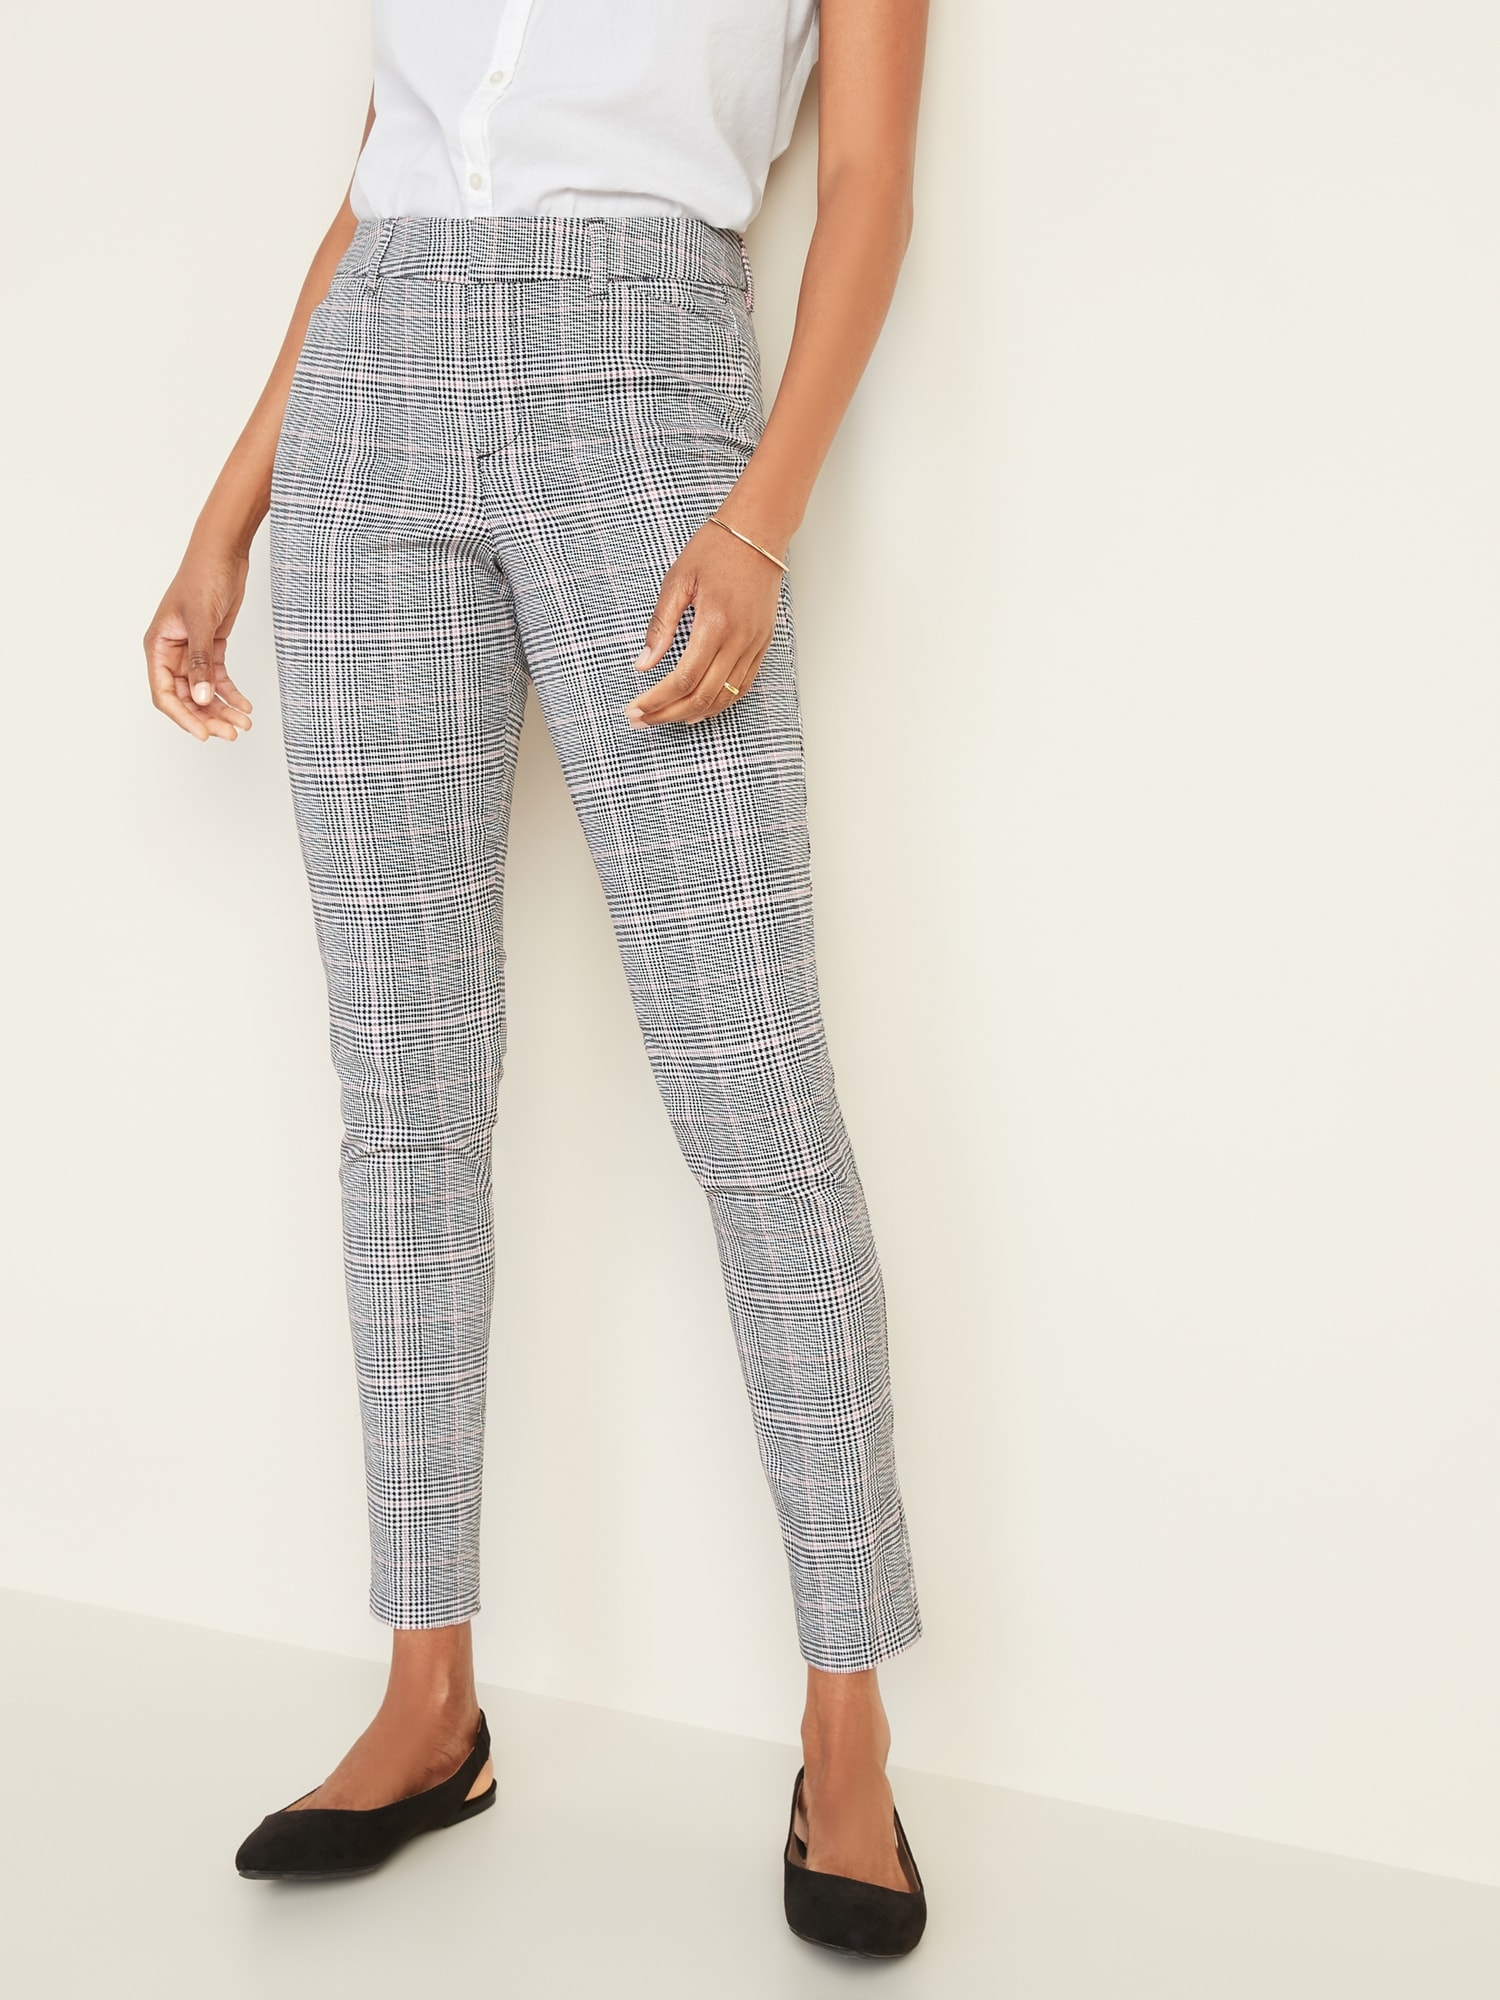 Old Navy Women/'s Patterned Pixie Chinos Grey Plaid Size 30